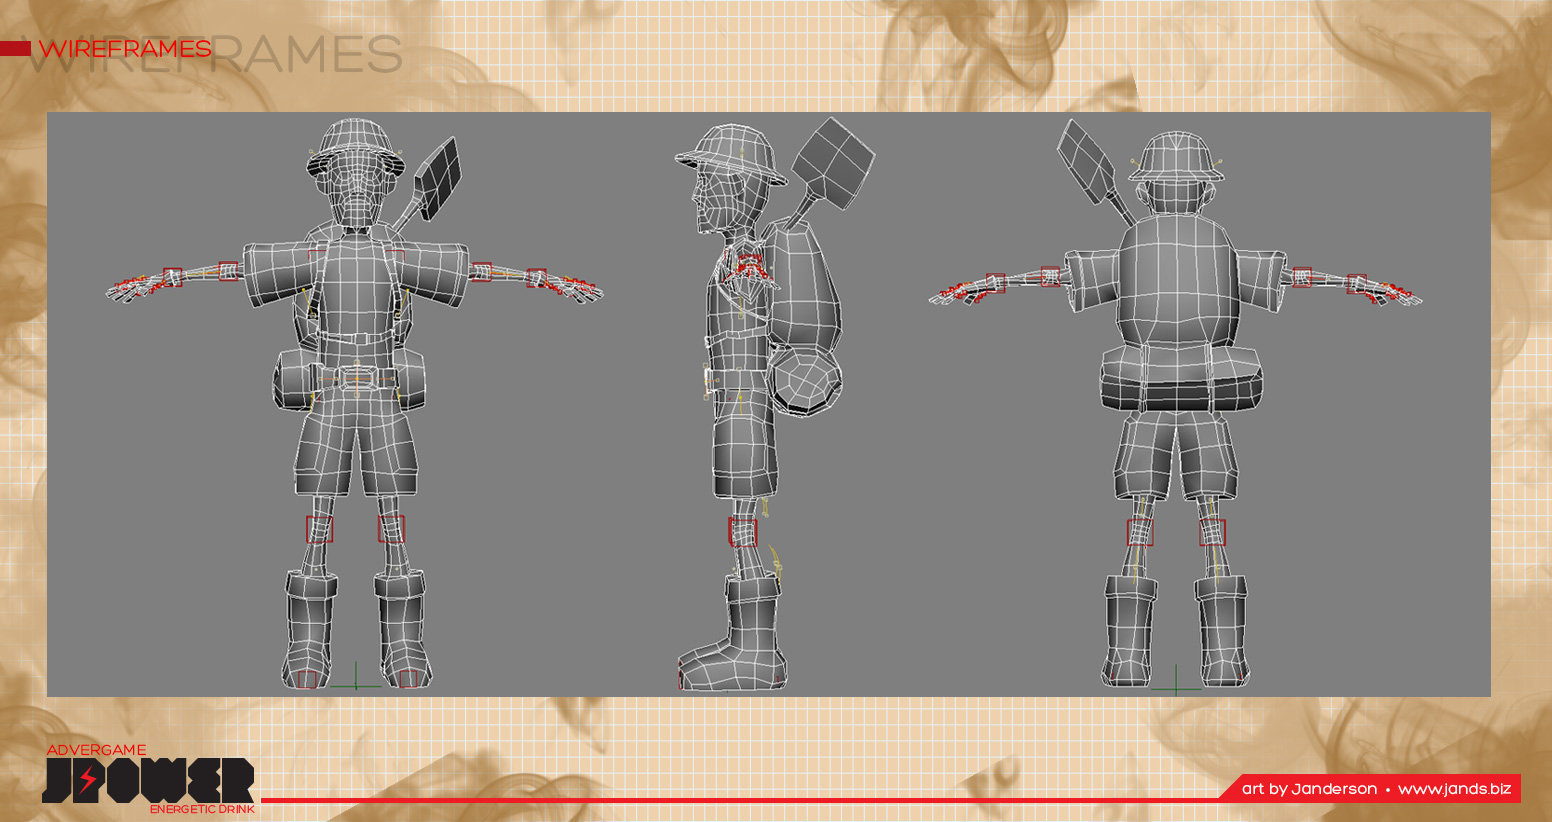 The main character - wireframe